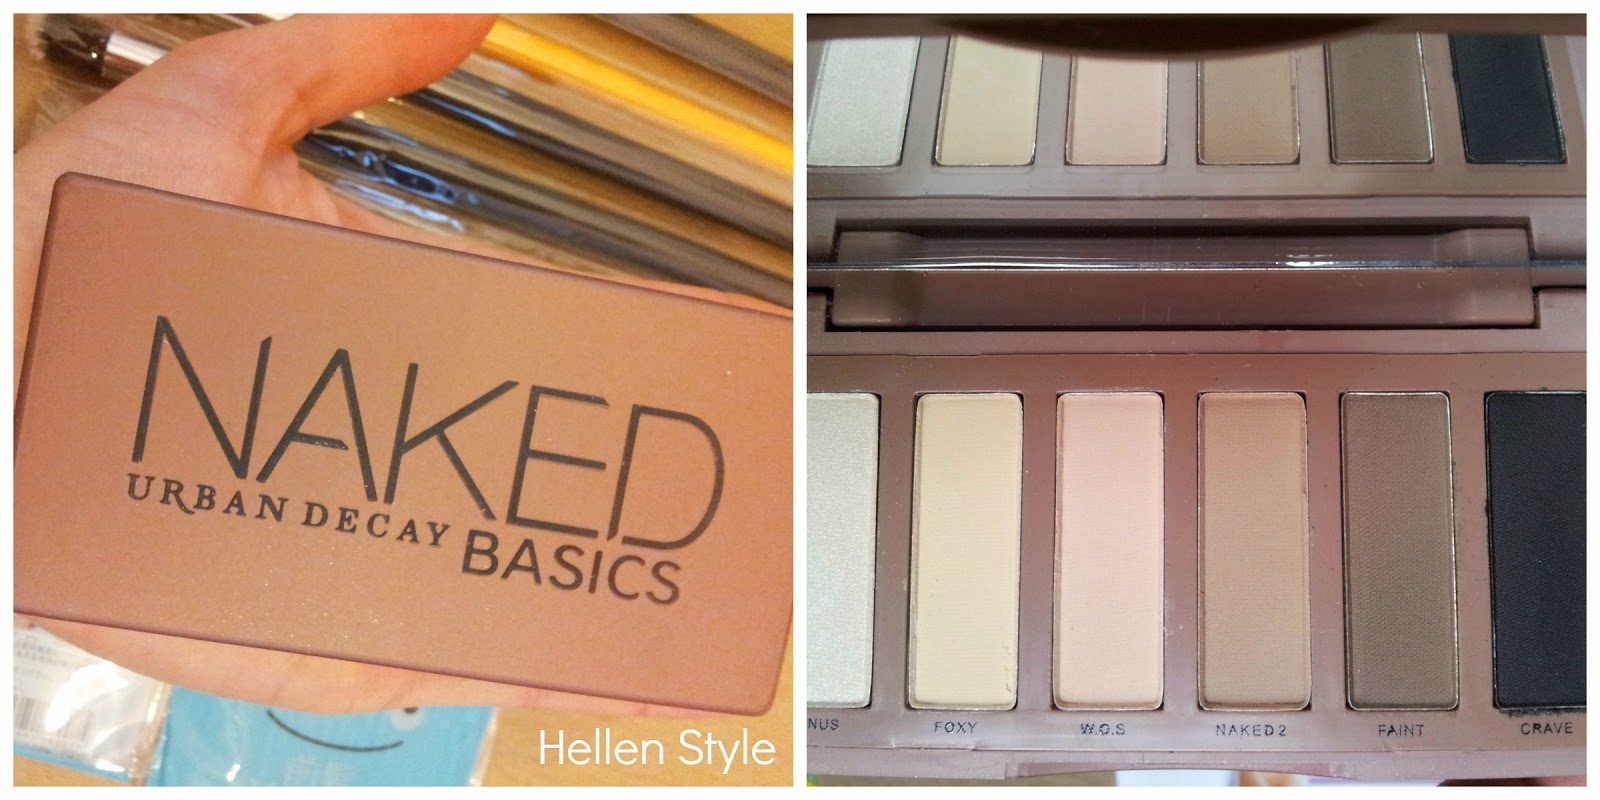 Imitación Naked Basics de Buyincoins